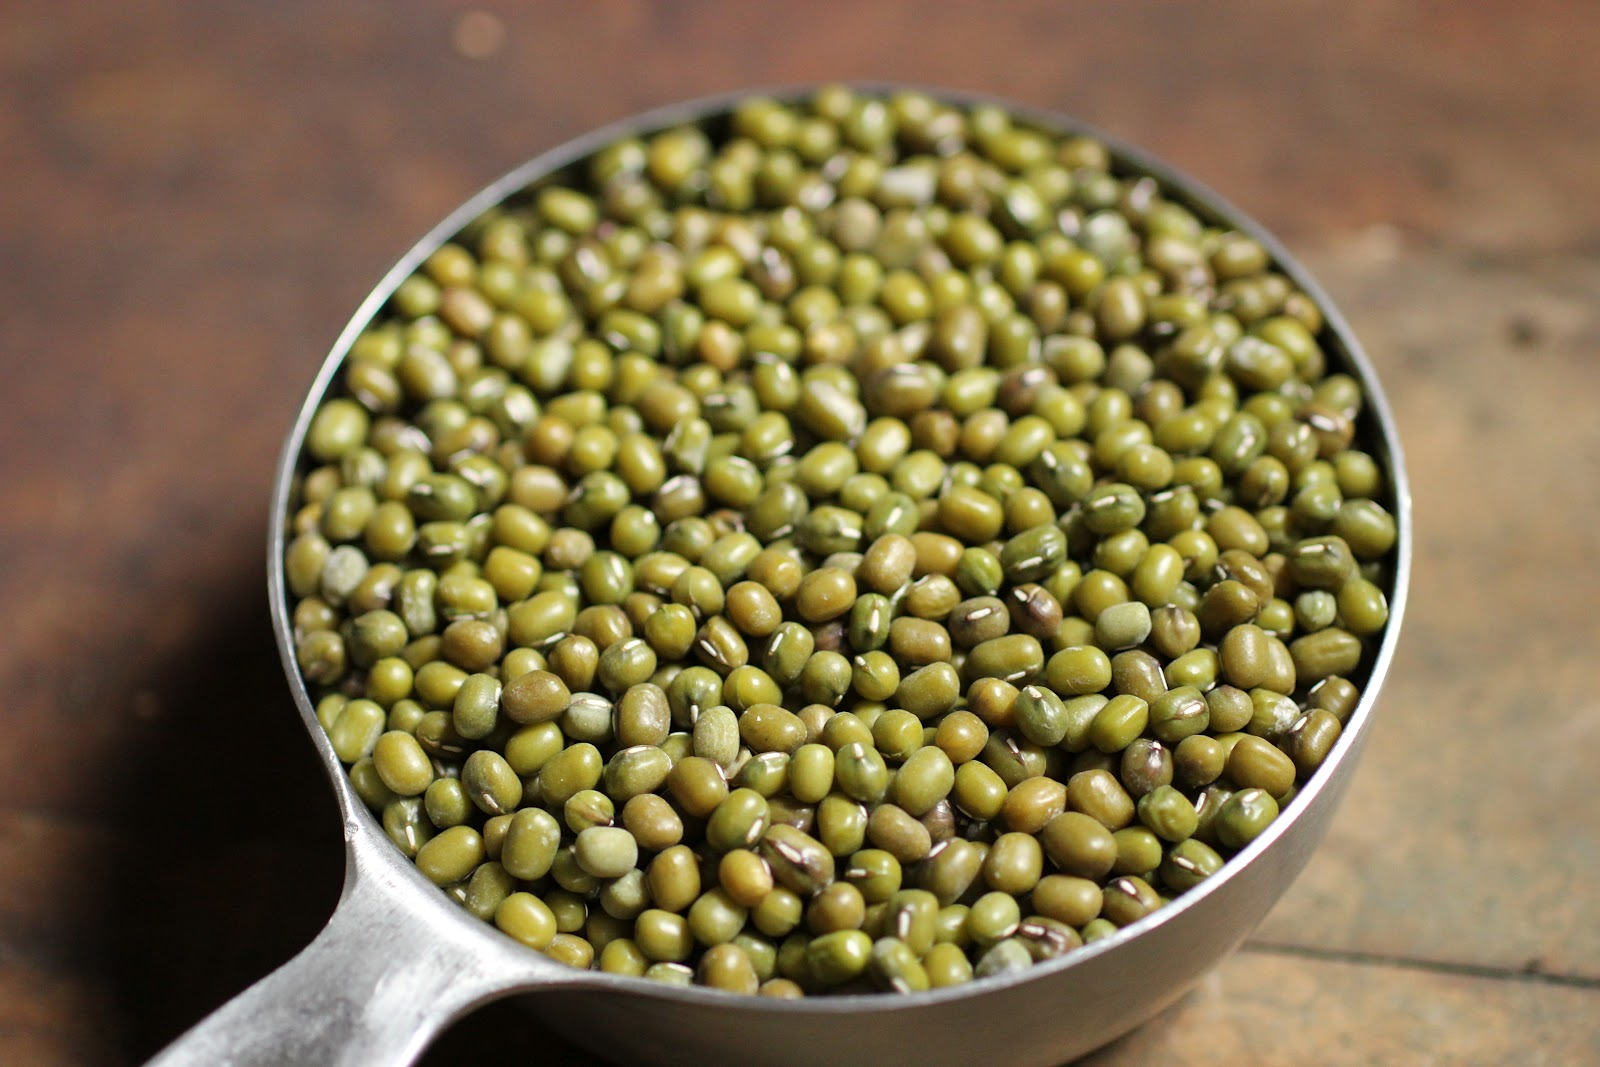 moong dal or mung bean